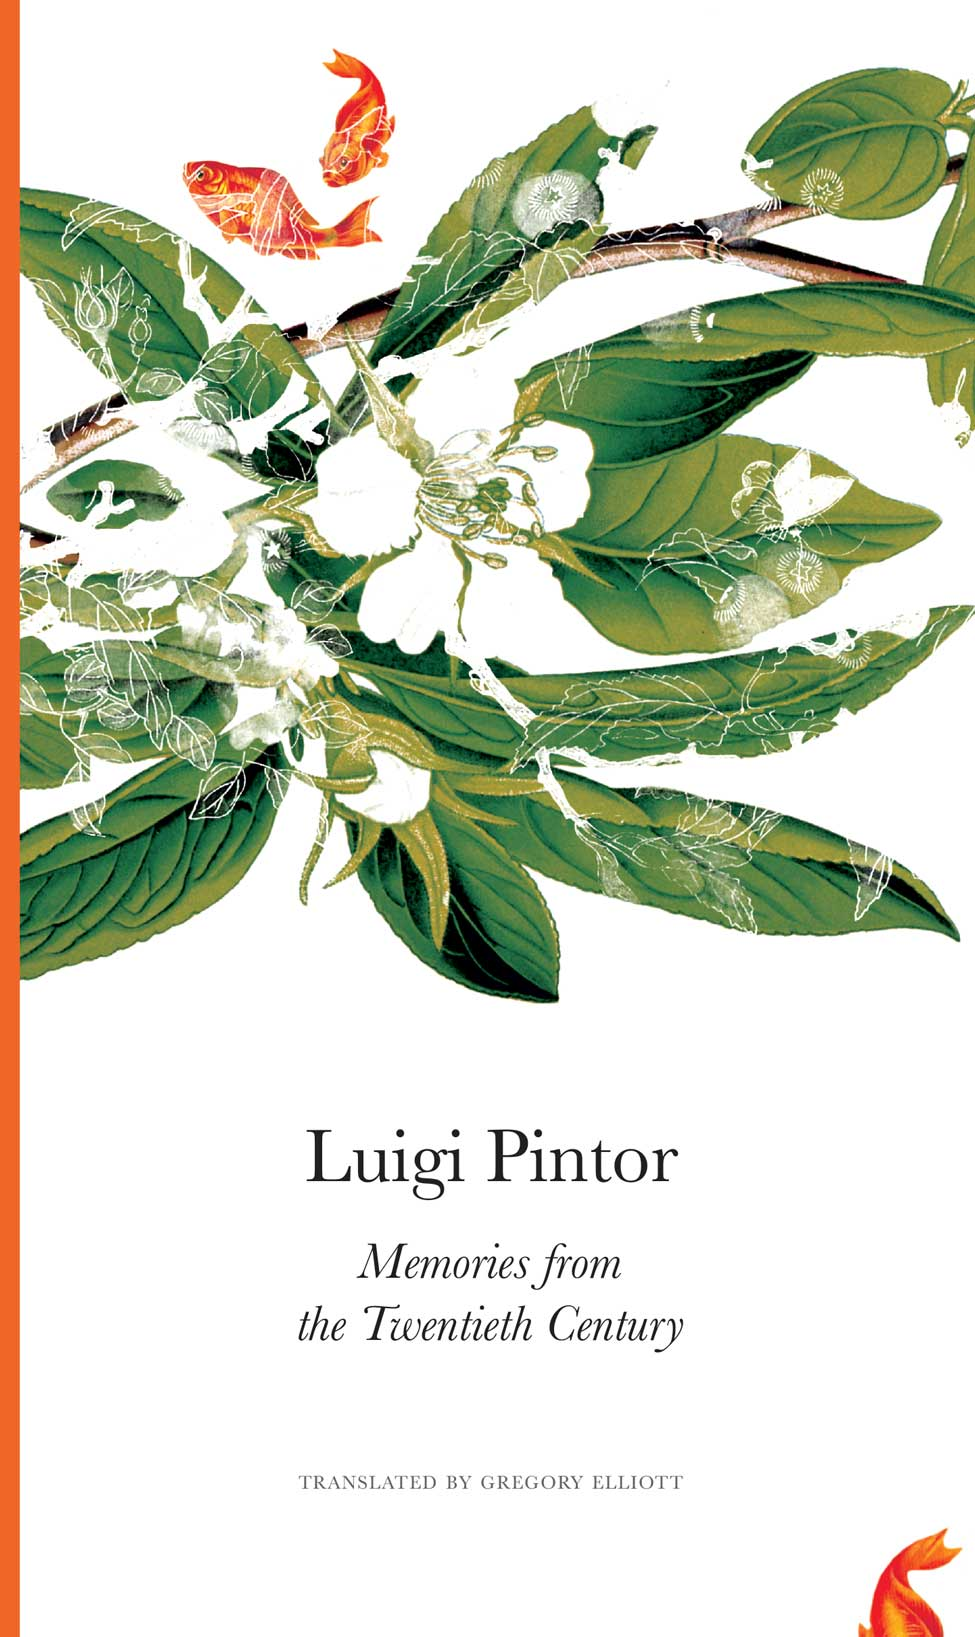 Memories from the Twentieth Century by Luigi Pintor | Seagull Books